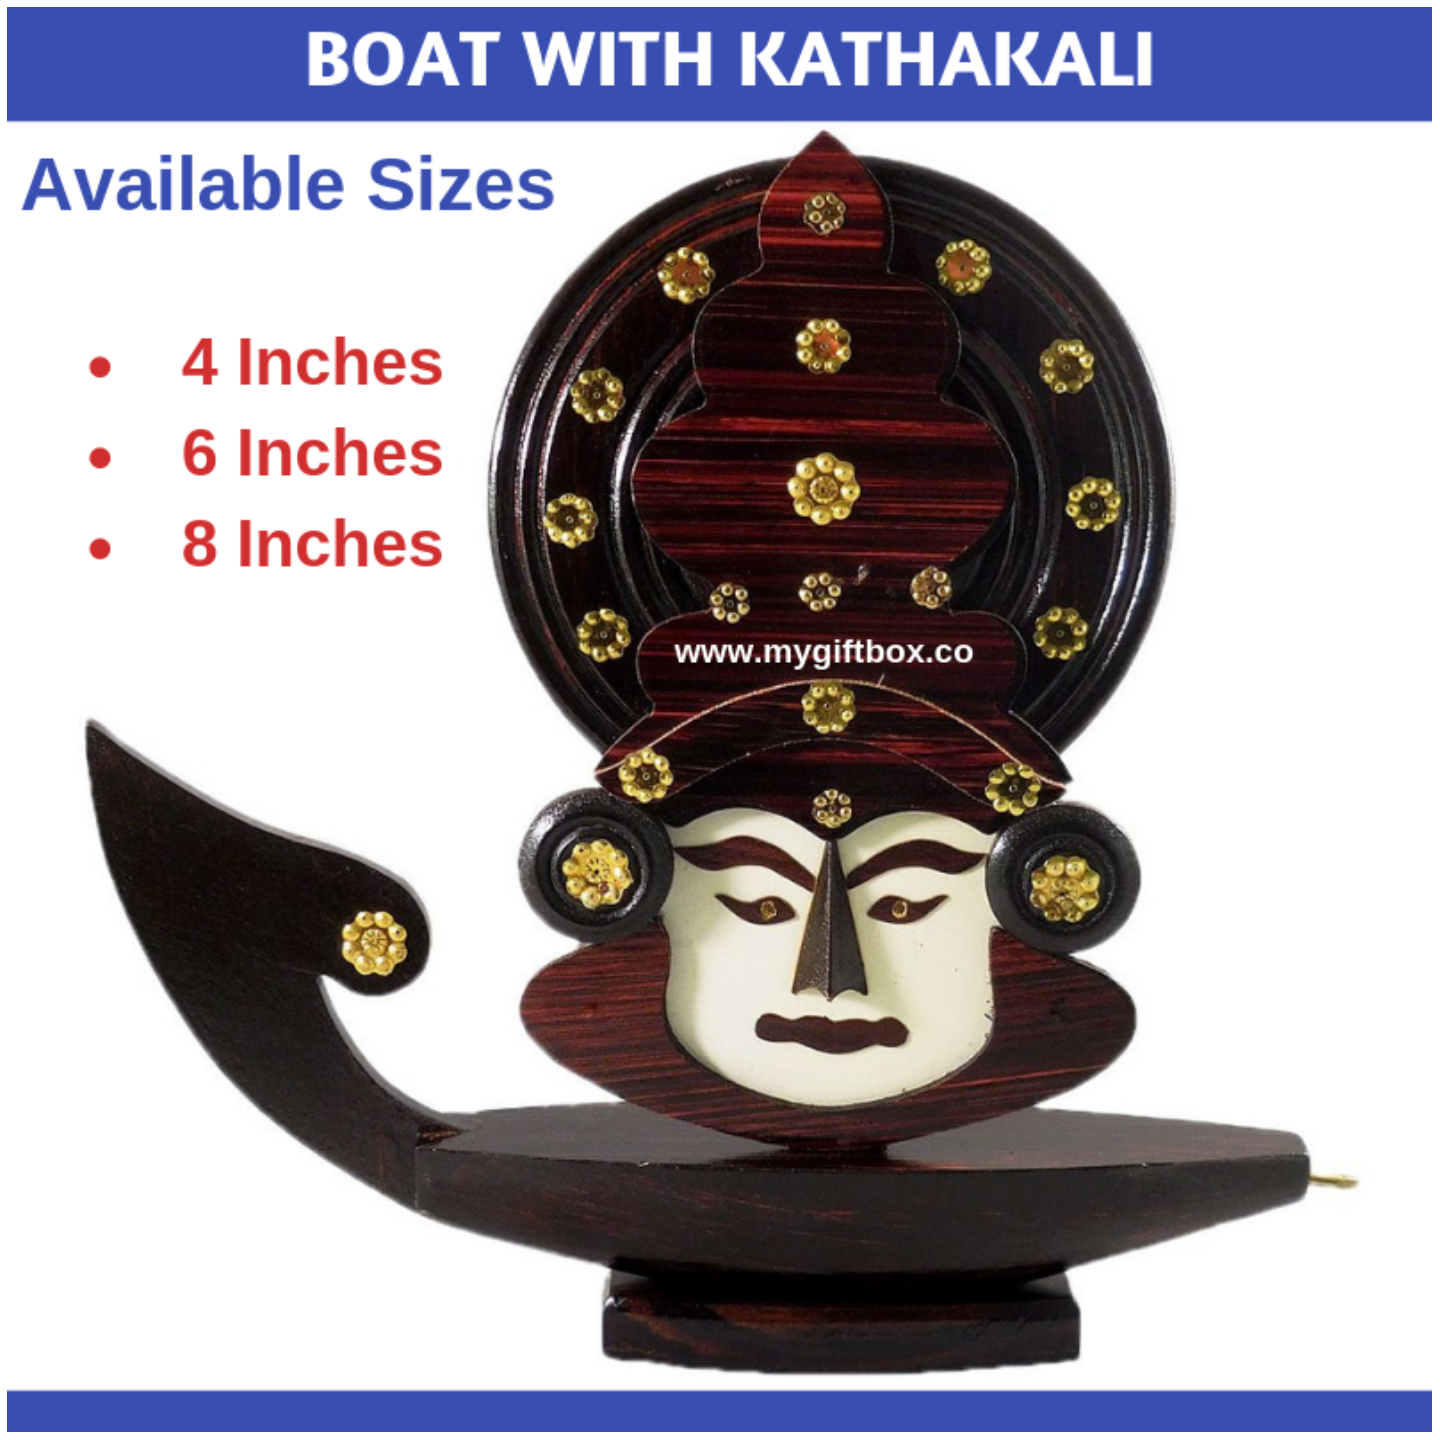 Boat With Kathakali